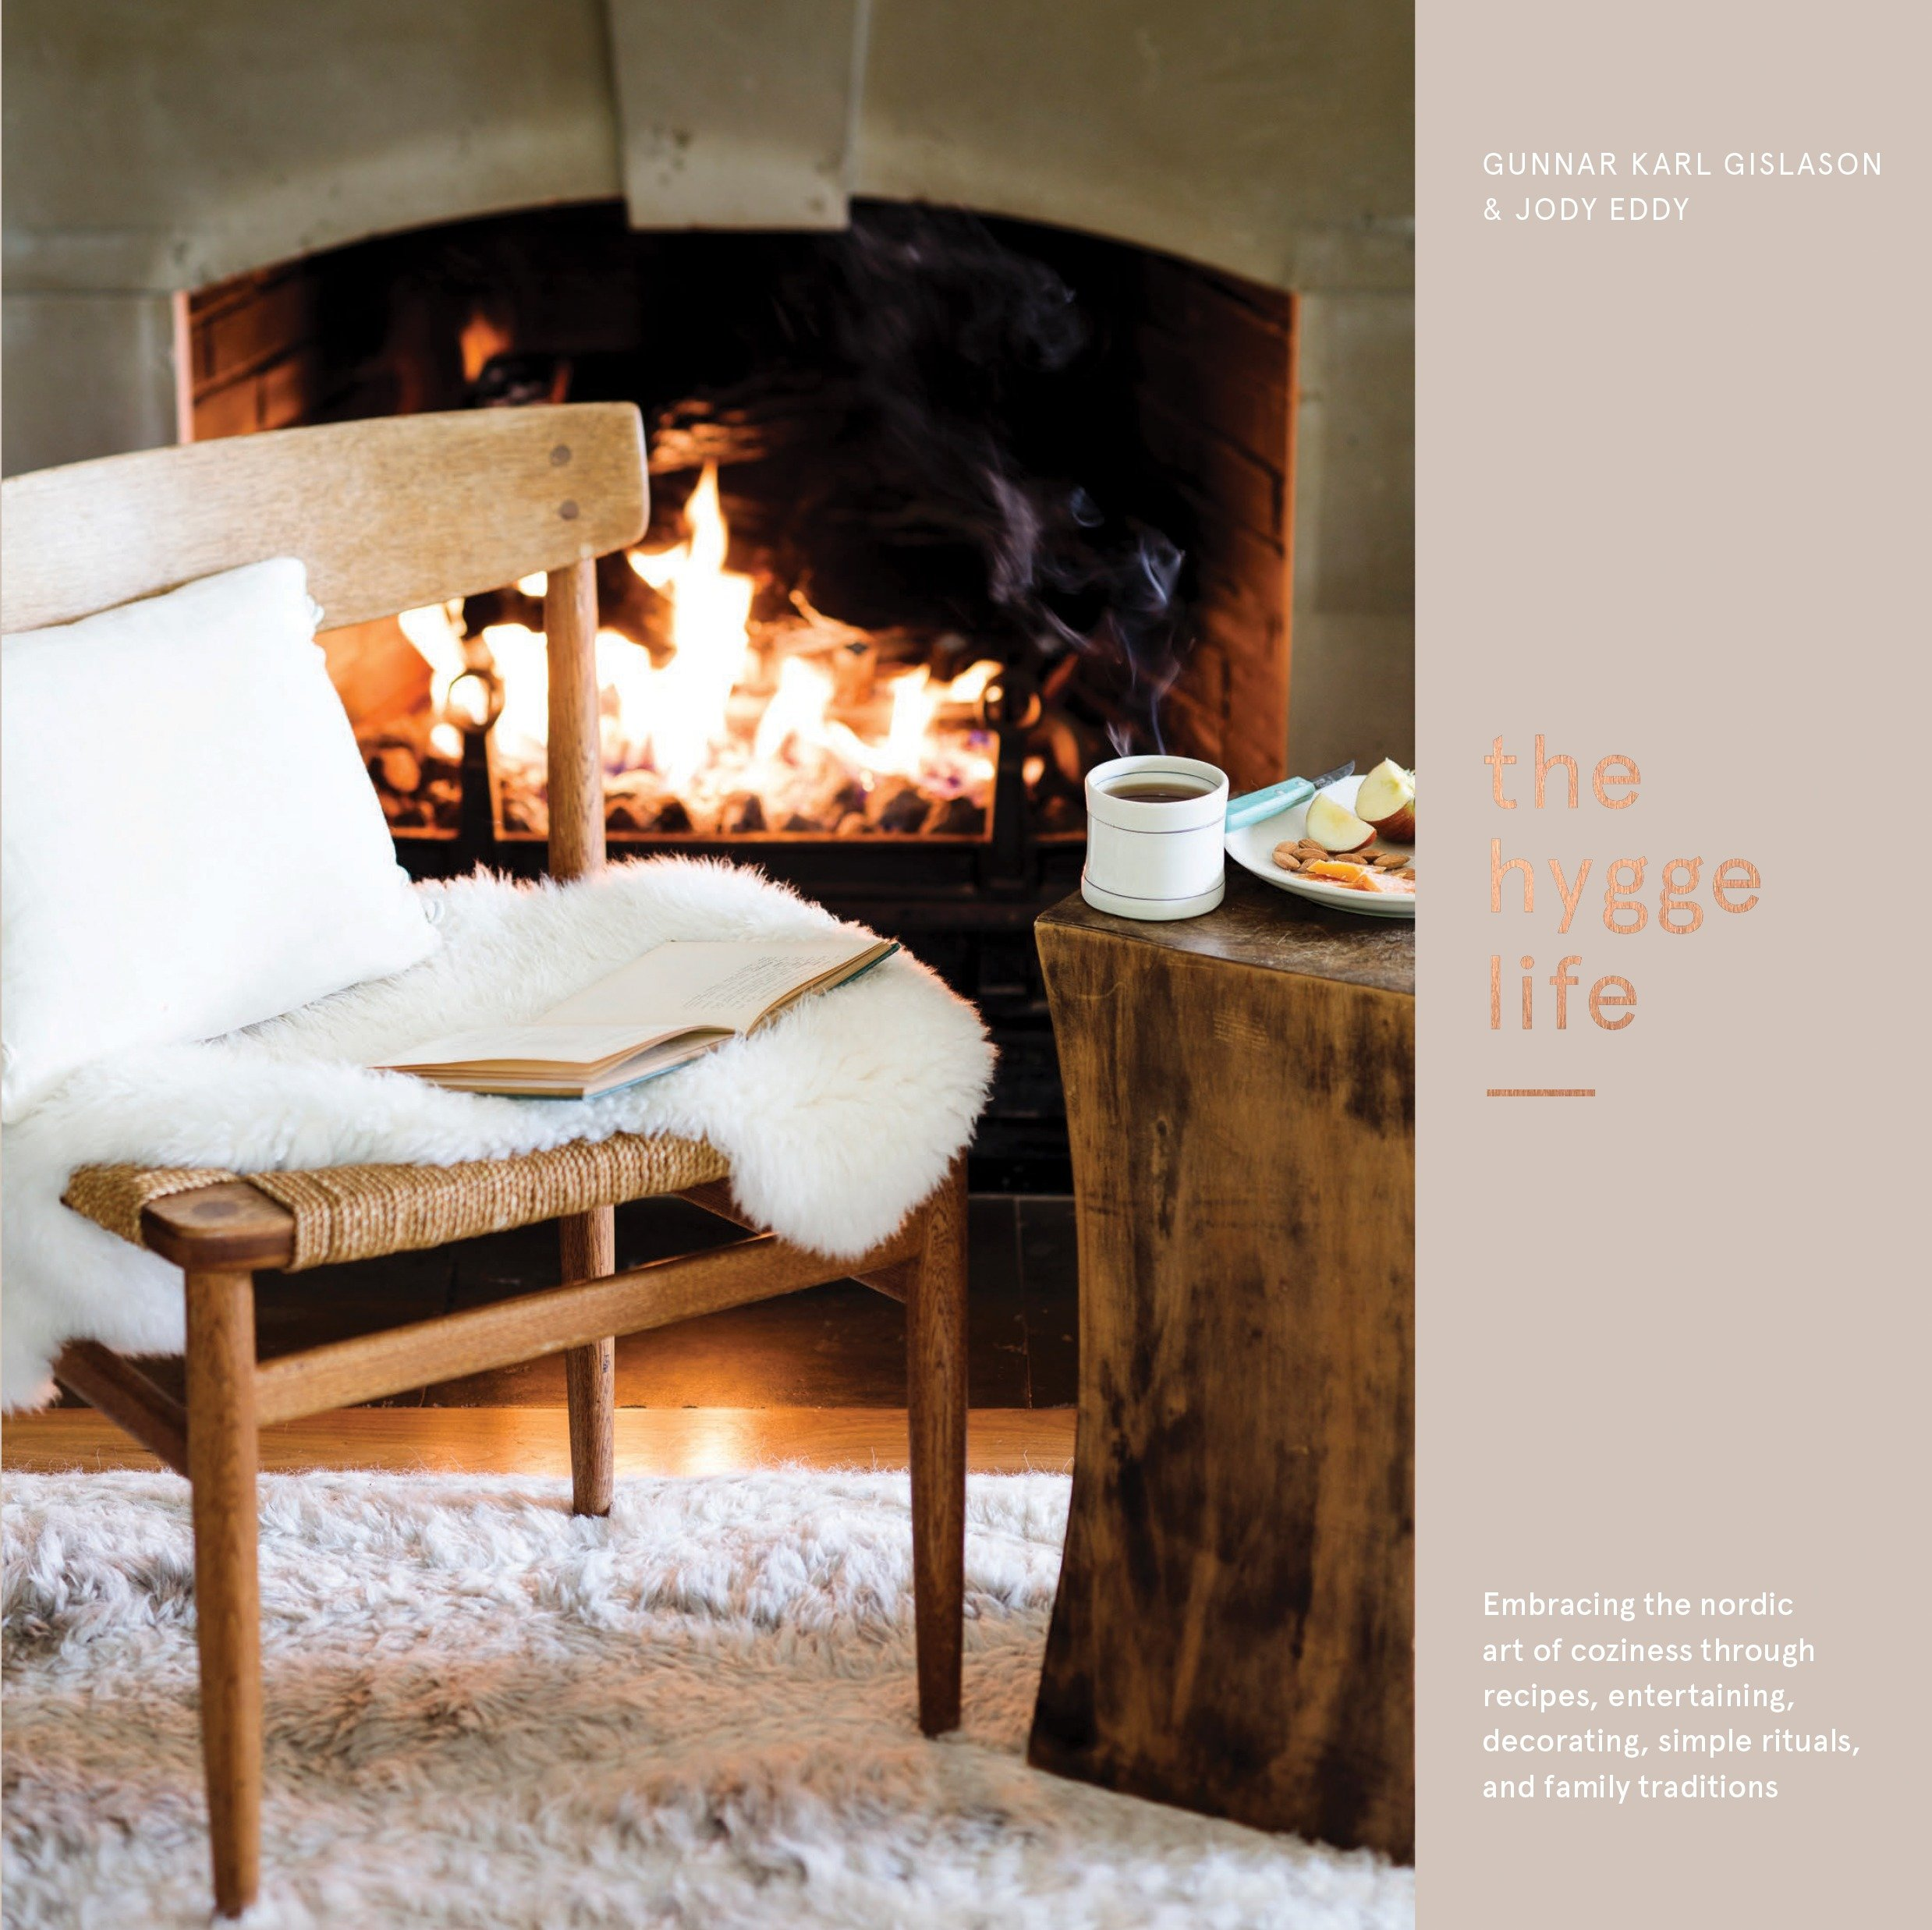 The Hygge Life Embracing the Nordic Art of Coziness Through Recipes, Entertaining, Decorating, Simple Rituals, and Family Traditions